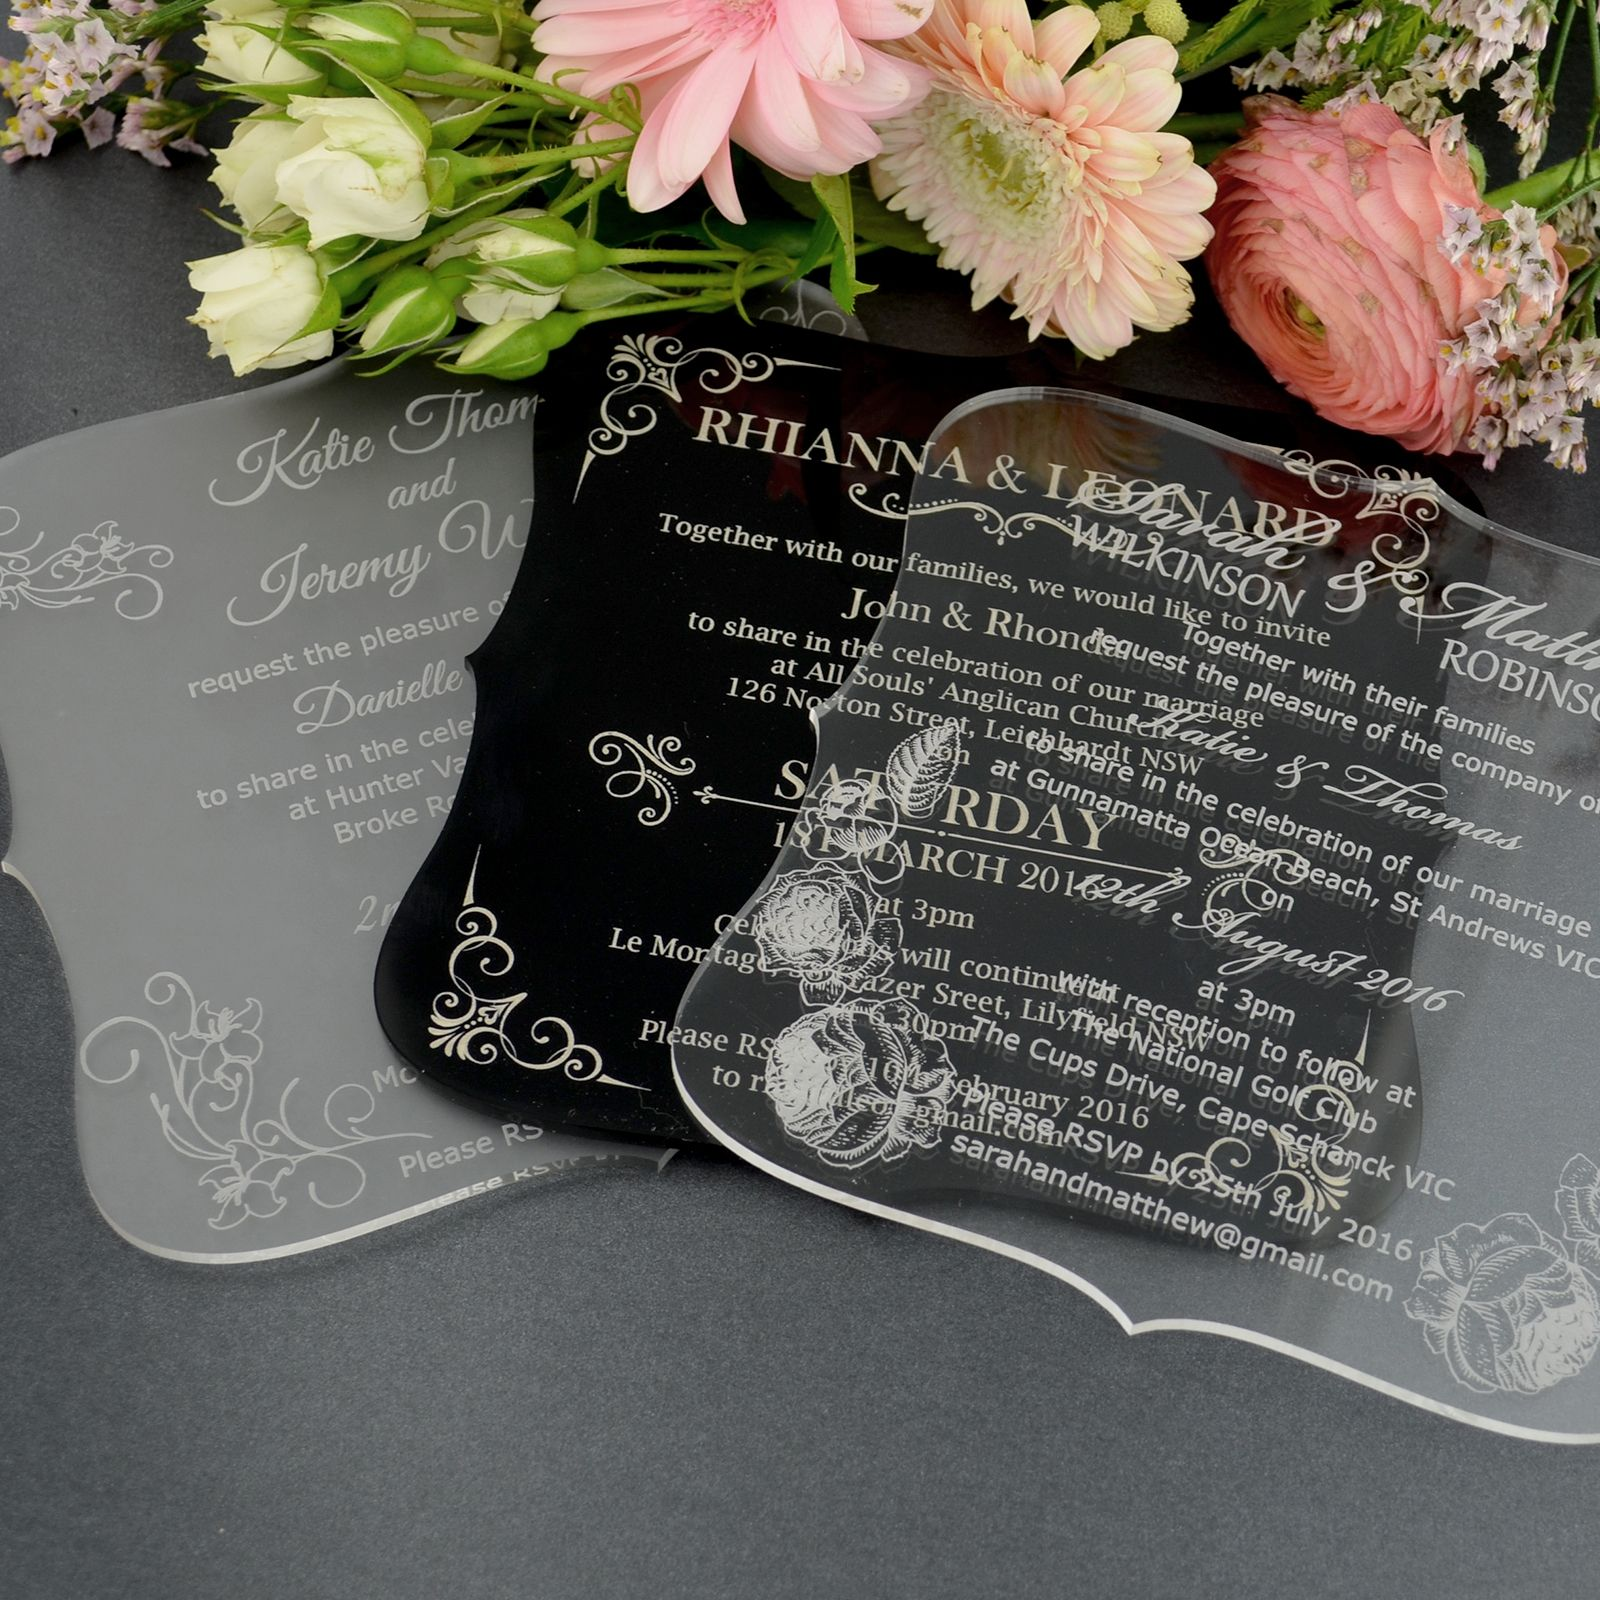 Engraved Wedding Invitations Online – Traditional Engraved Wedding Invitations